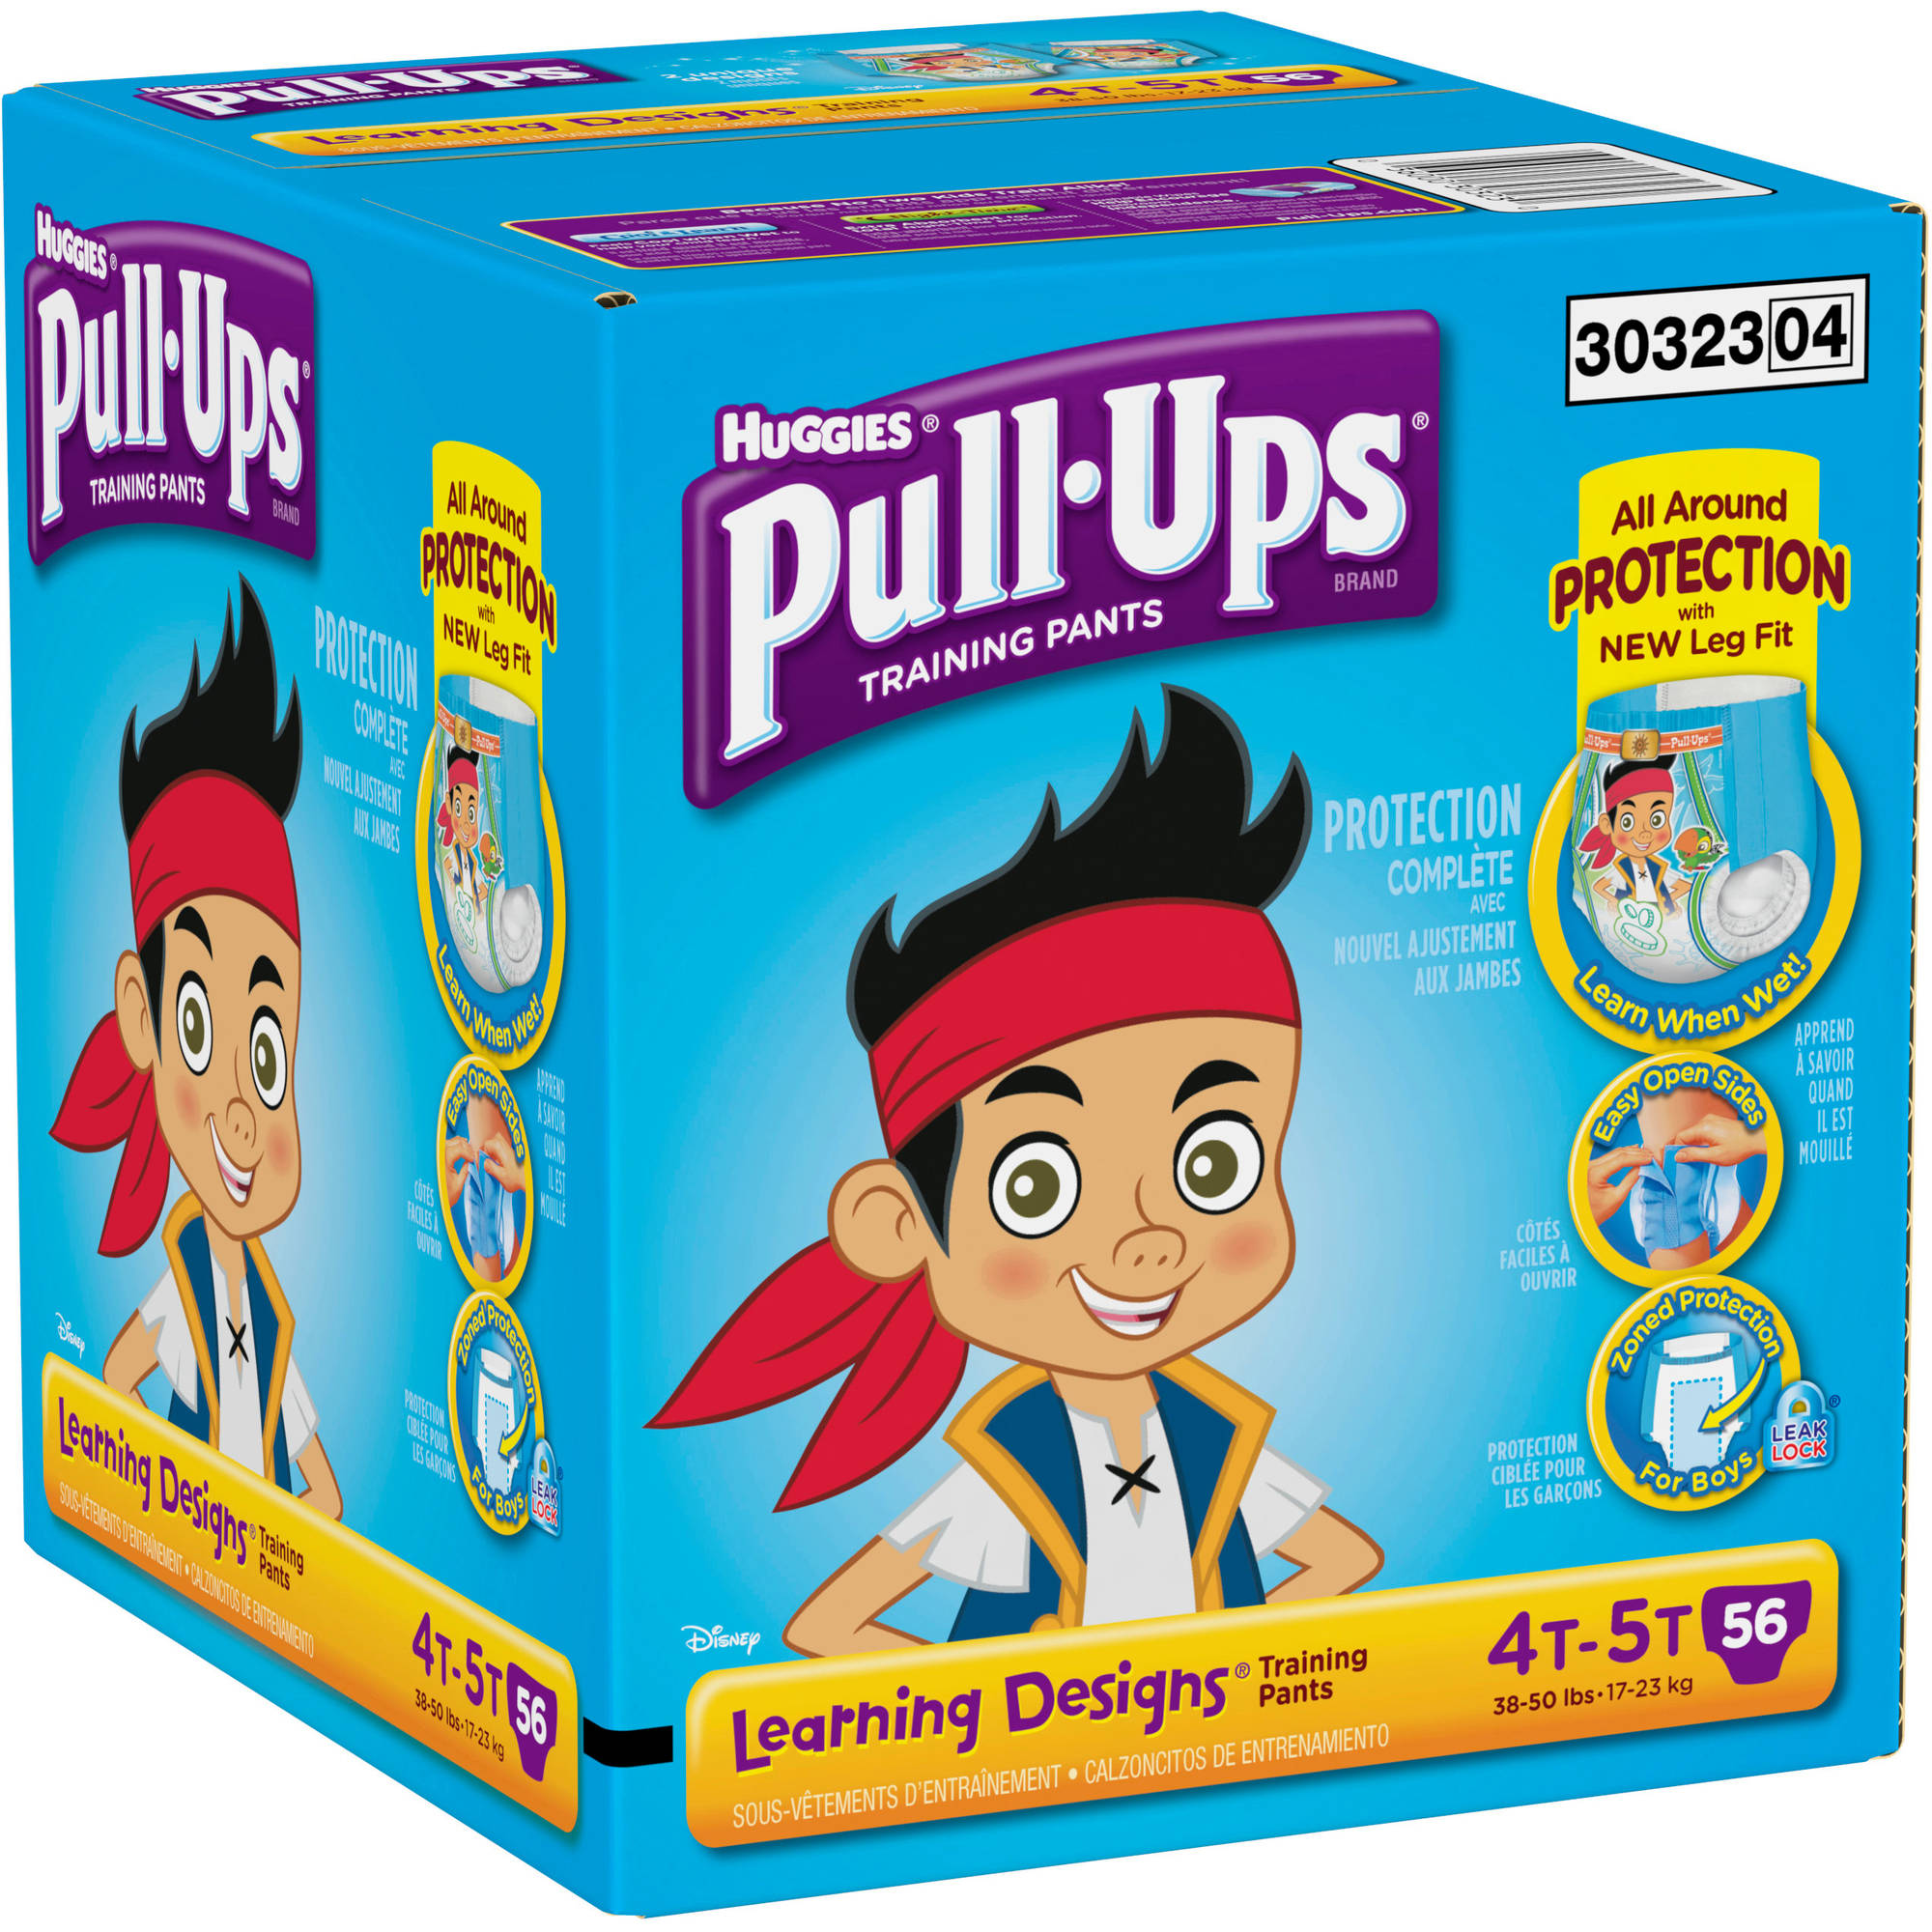 HUGGIES Pull-Ups Boys' Learning Designs Training Pants, Super Pack, 4T/5T (56 count)